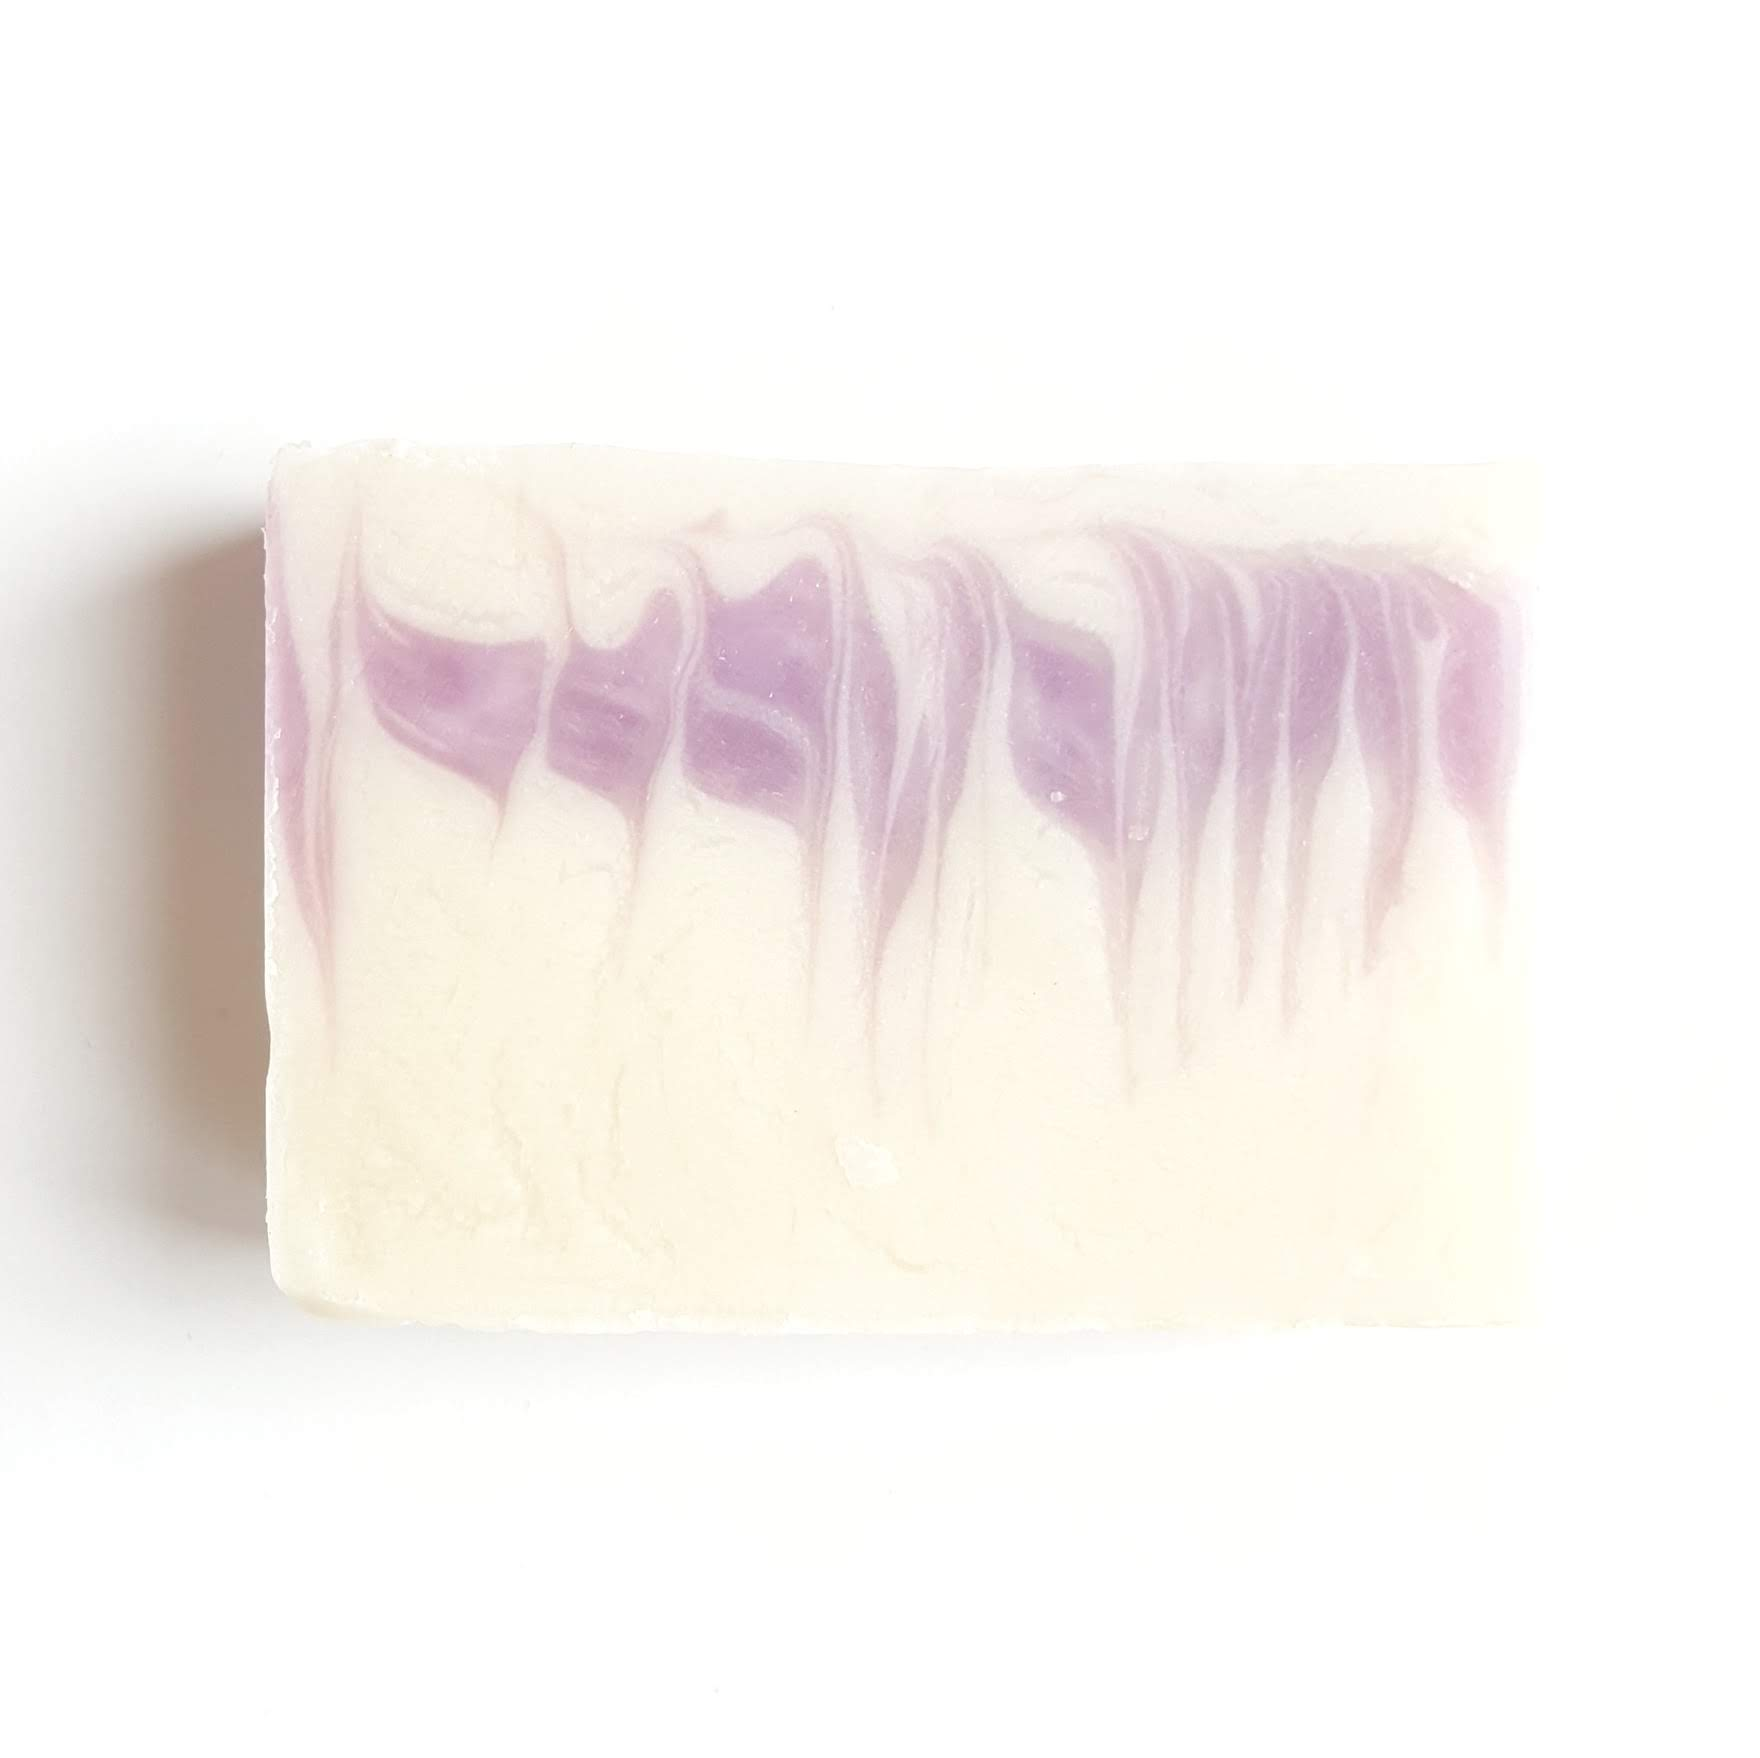 New! Jingle Dress Soap